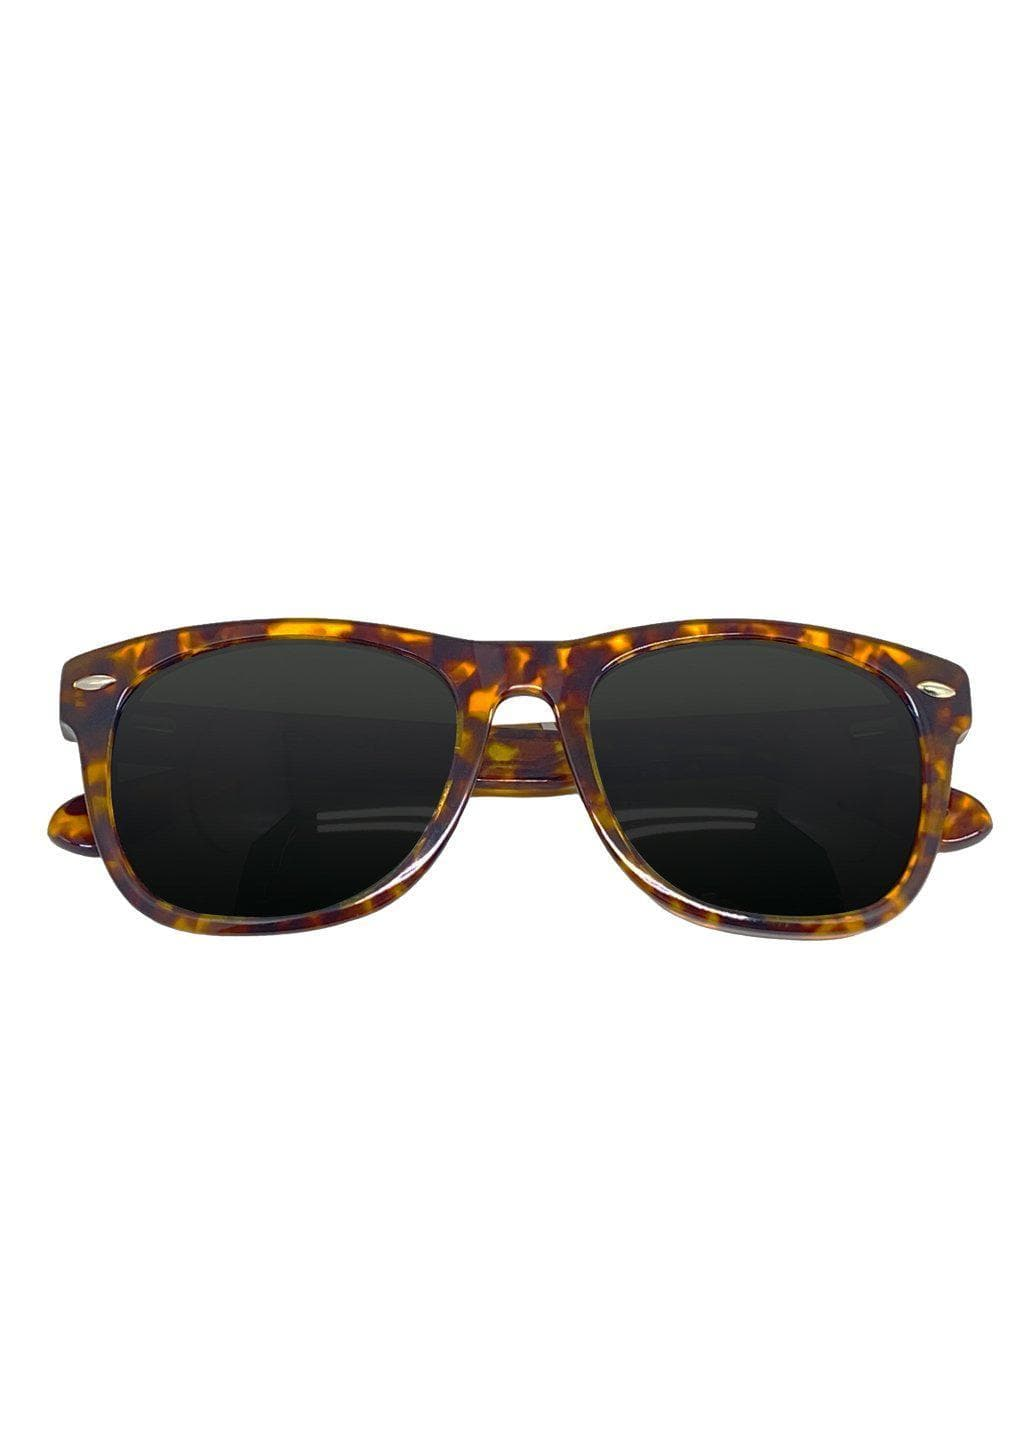 Eyewood Wayfarers - Fusion - Lynx - A mix of acetate and wood makes theses sunglasses unique.